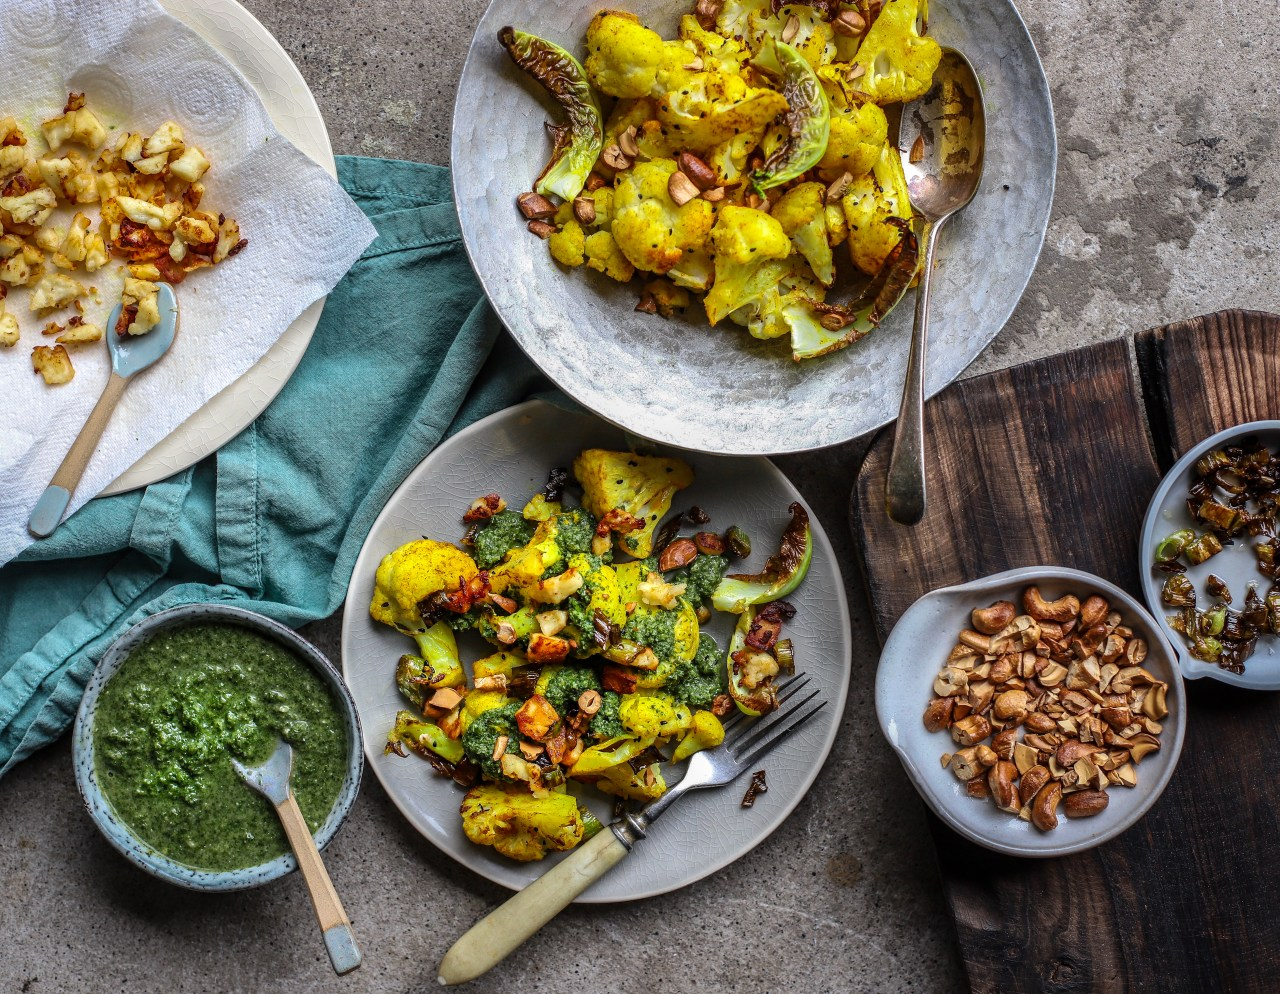 Green herb and coconut #cauliflower with crispy paneer crumbs is a light Indian-inspired #supper dish or zesty #sidedish. #vegetarian #Indianfood #recipe